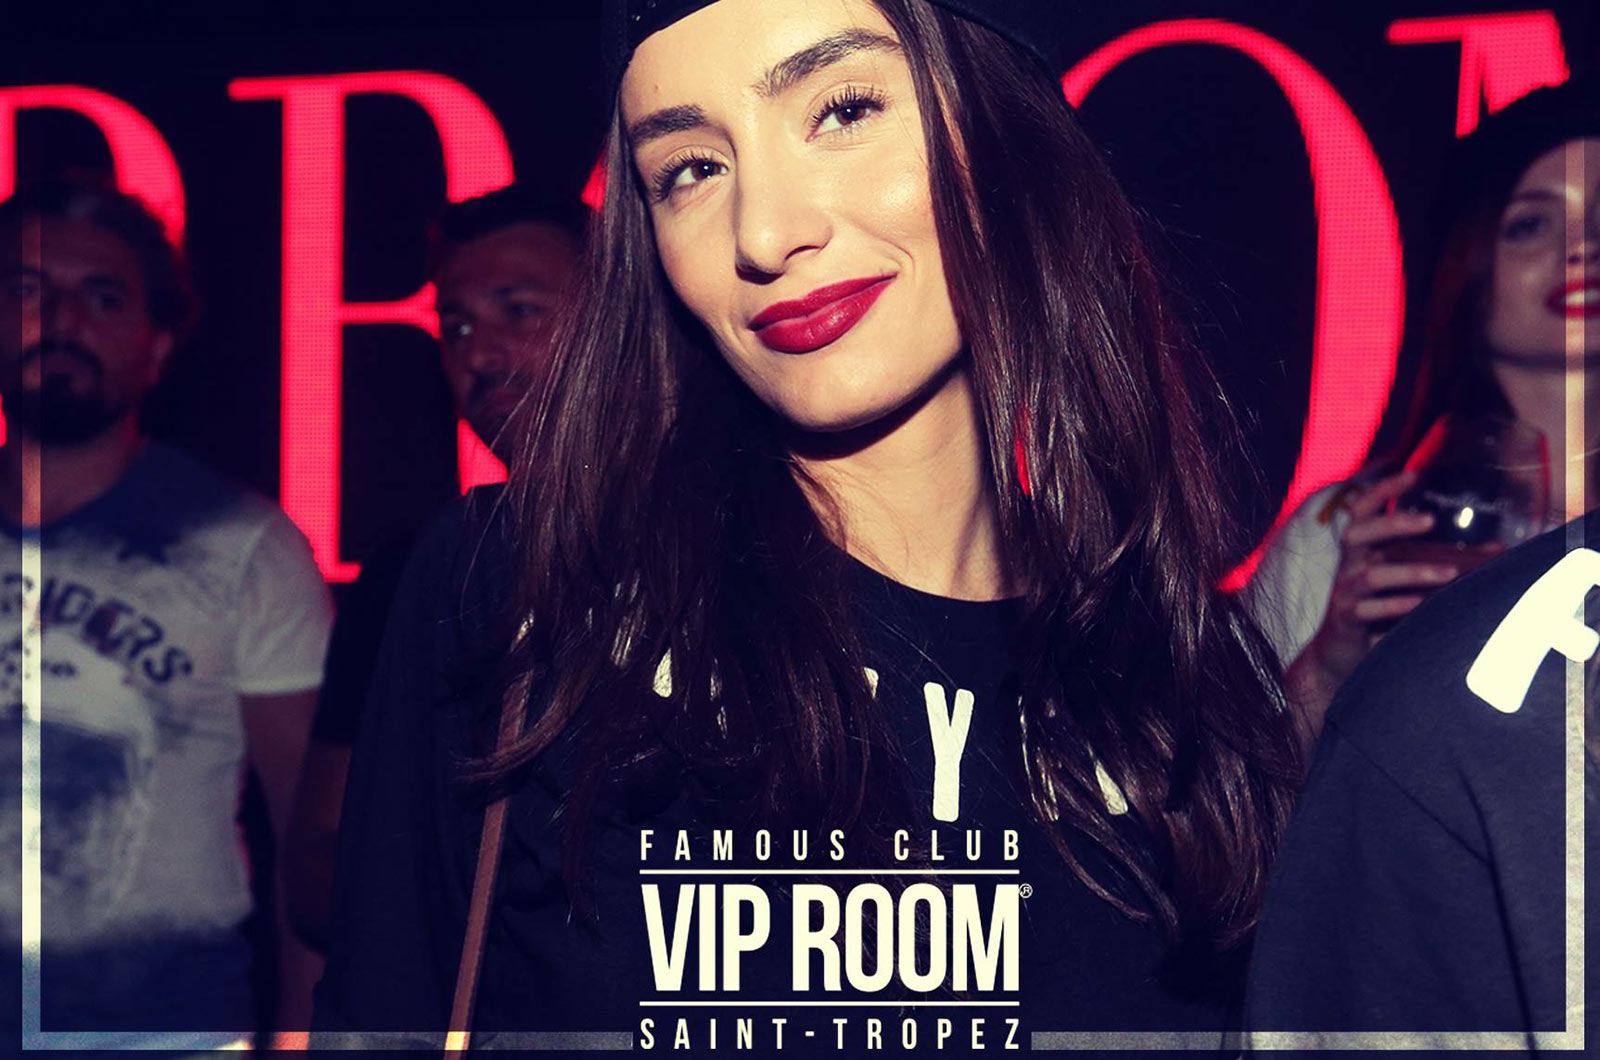 Family First - Saint Tropez - Vip Room